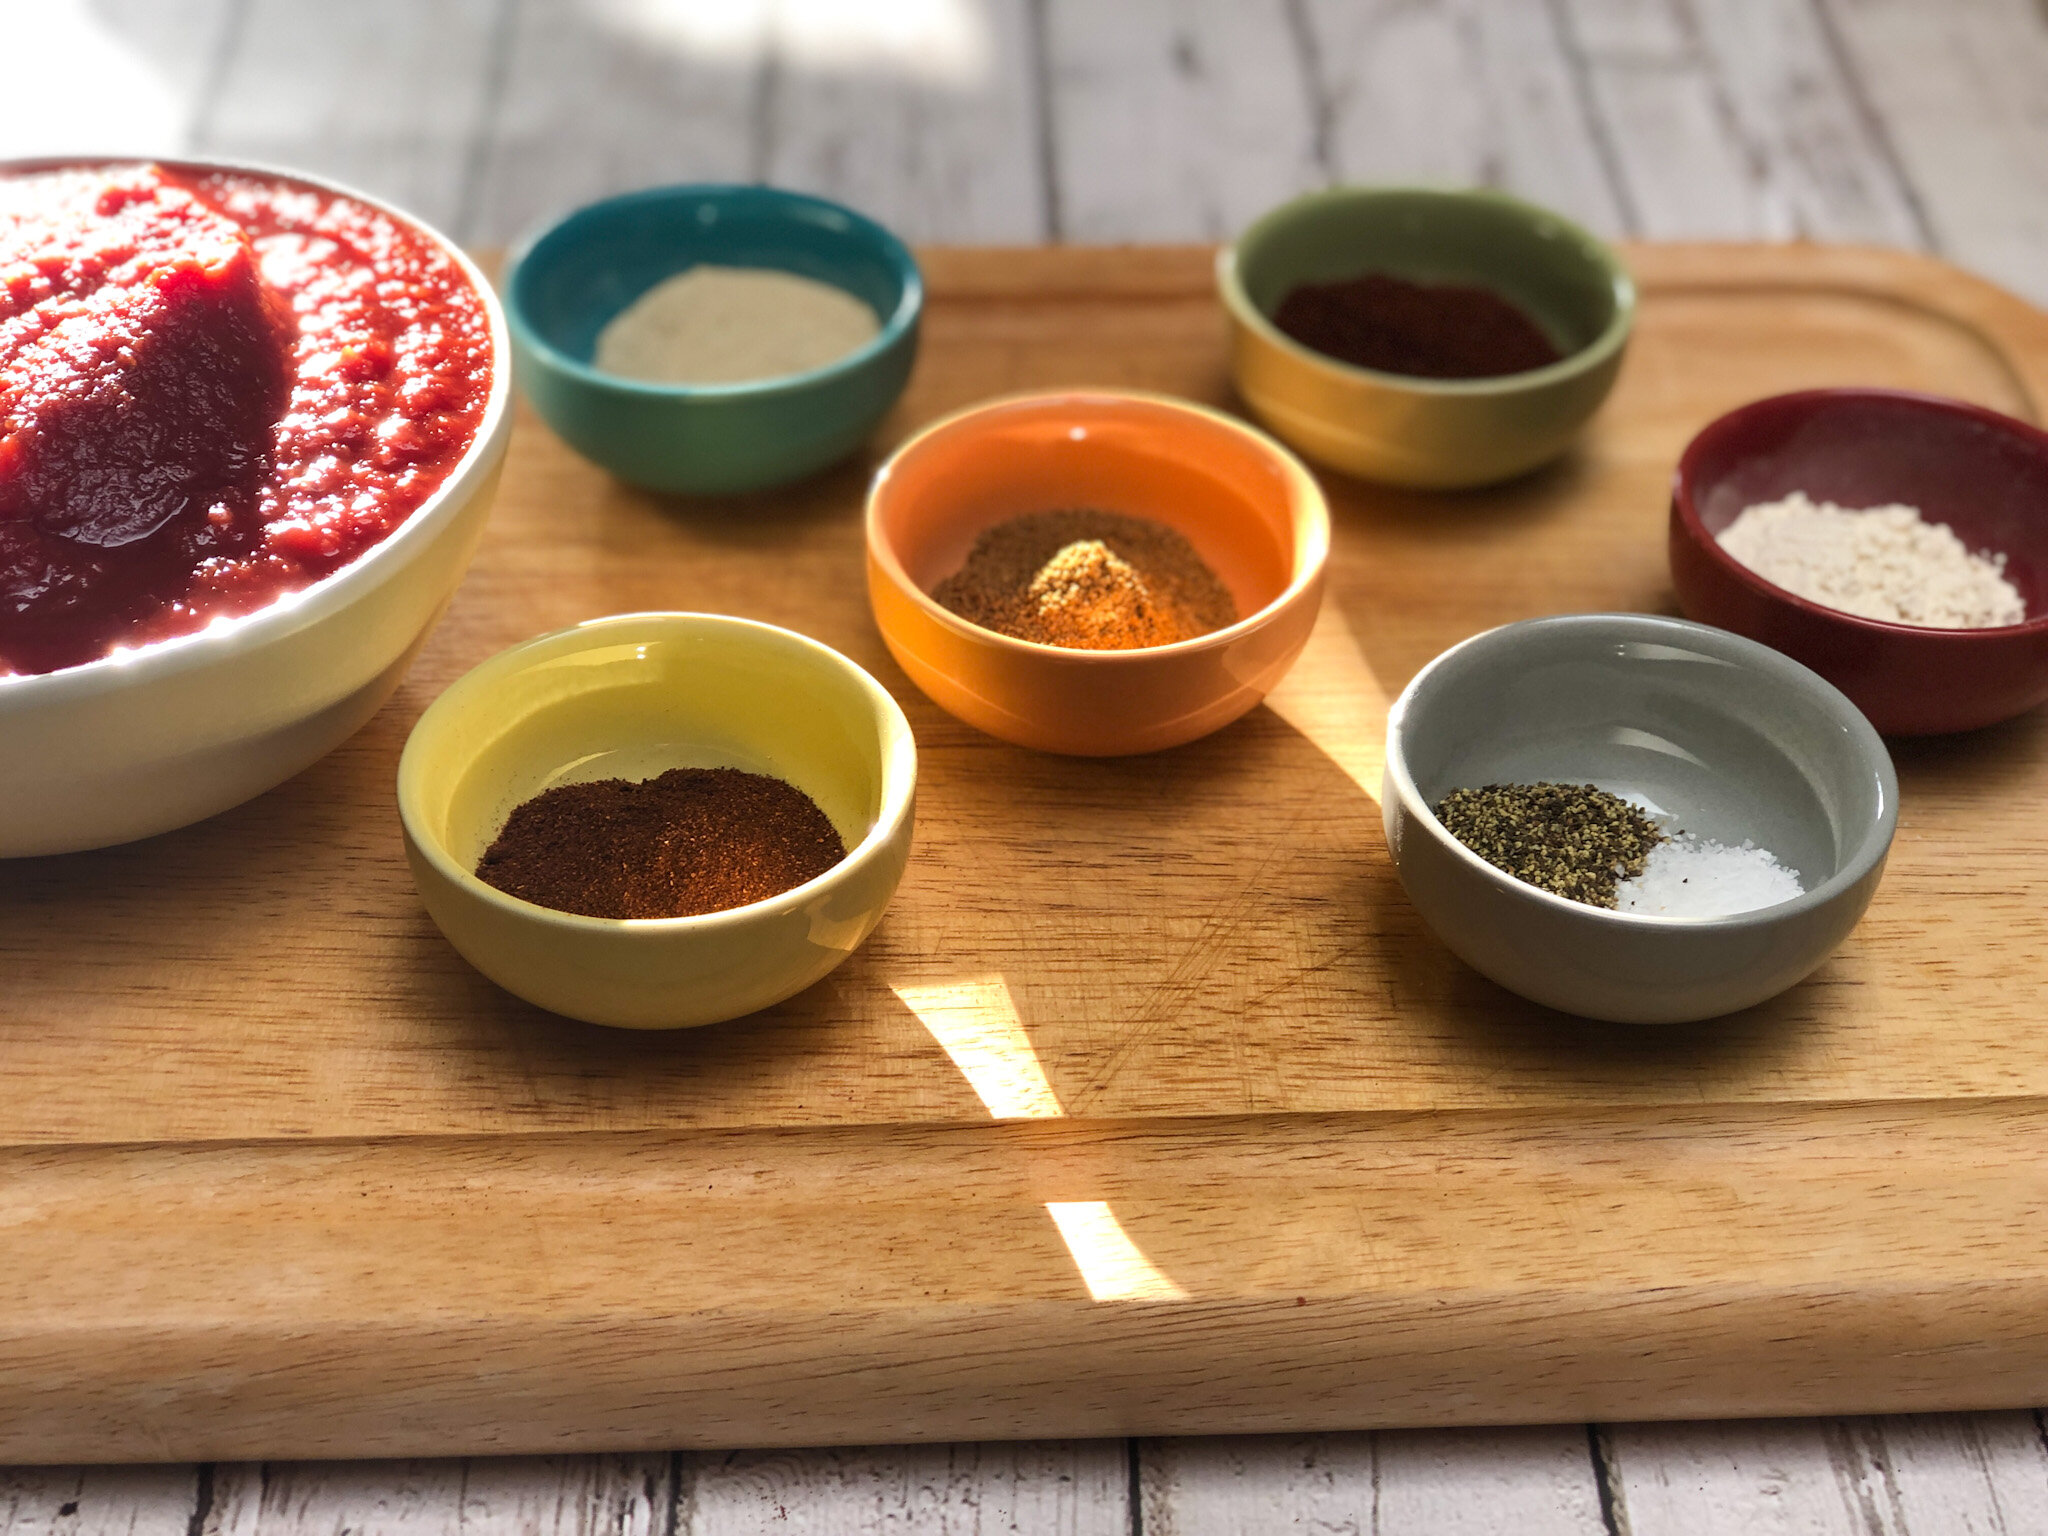 Stoneware pinch bowls, some of the Best Gifts for Foodies.